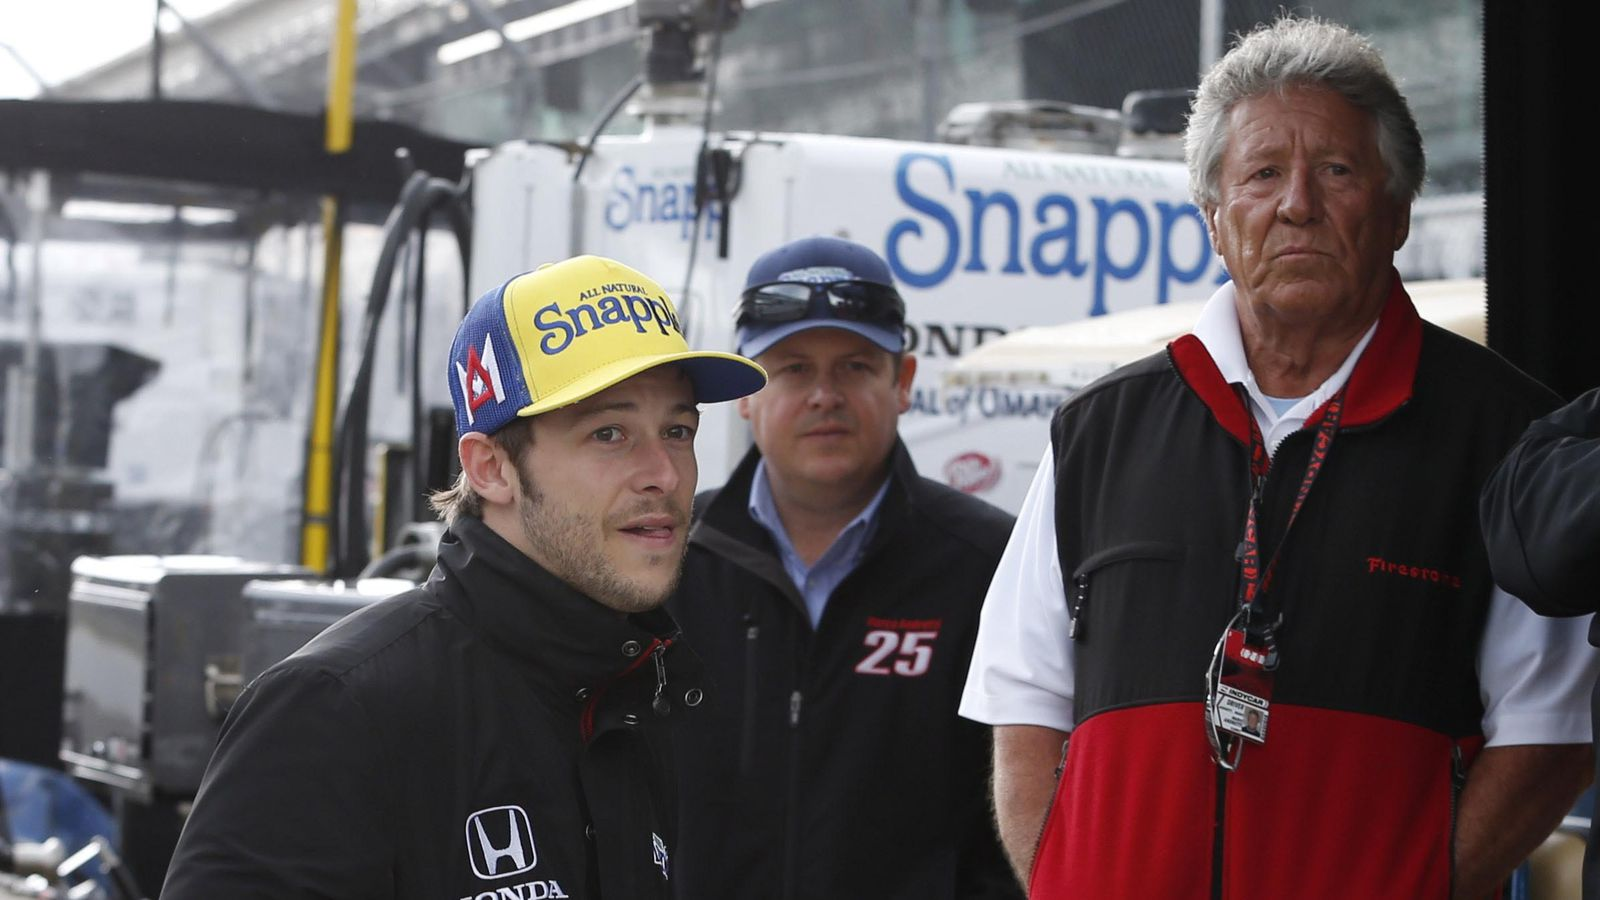 Indianapolis 500 2014: Curse or not, Indy haunts Andretti